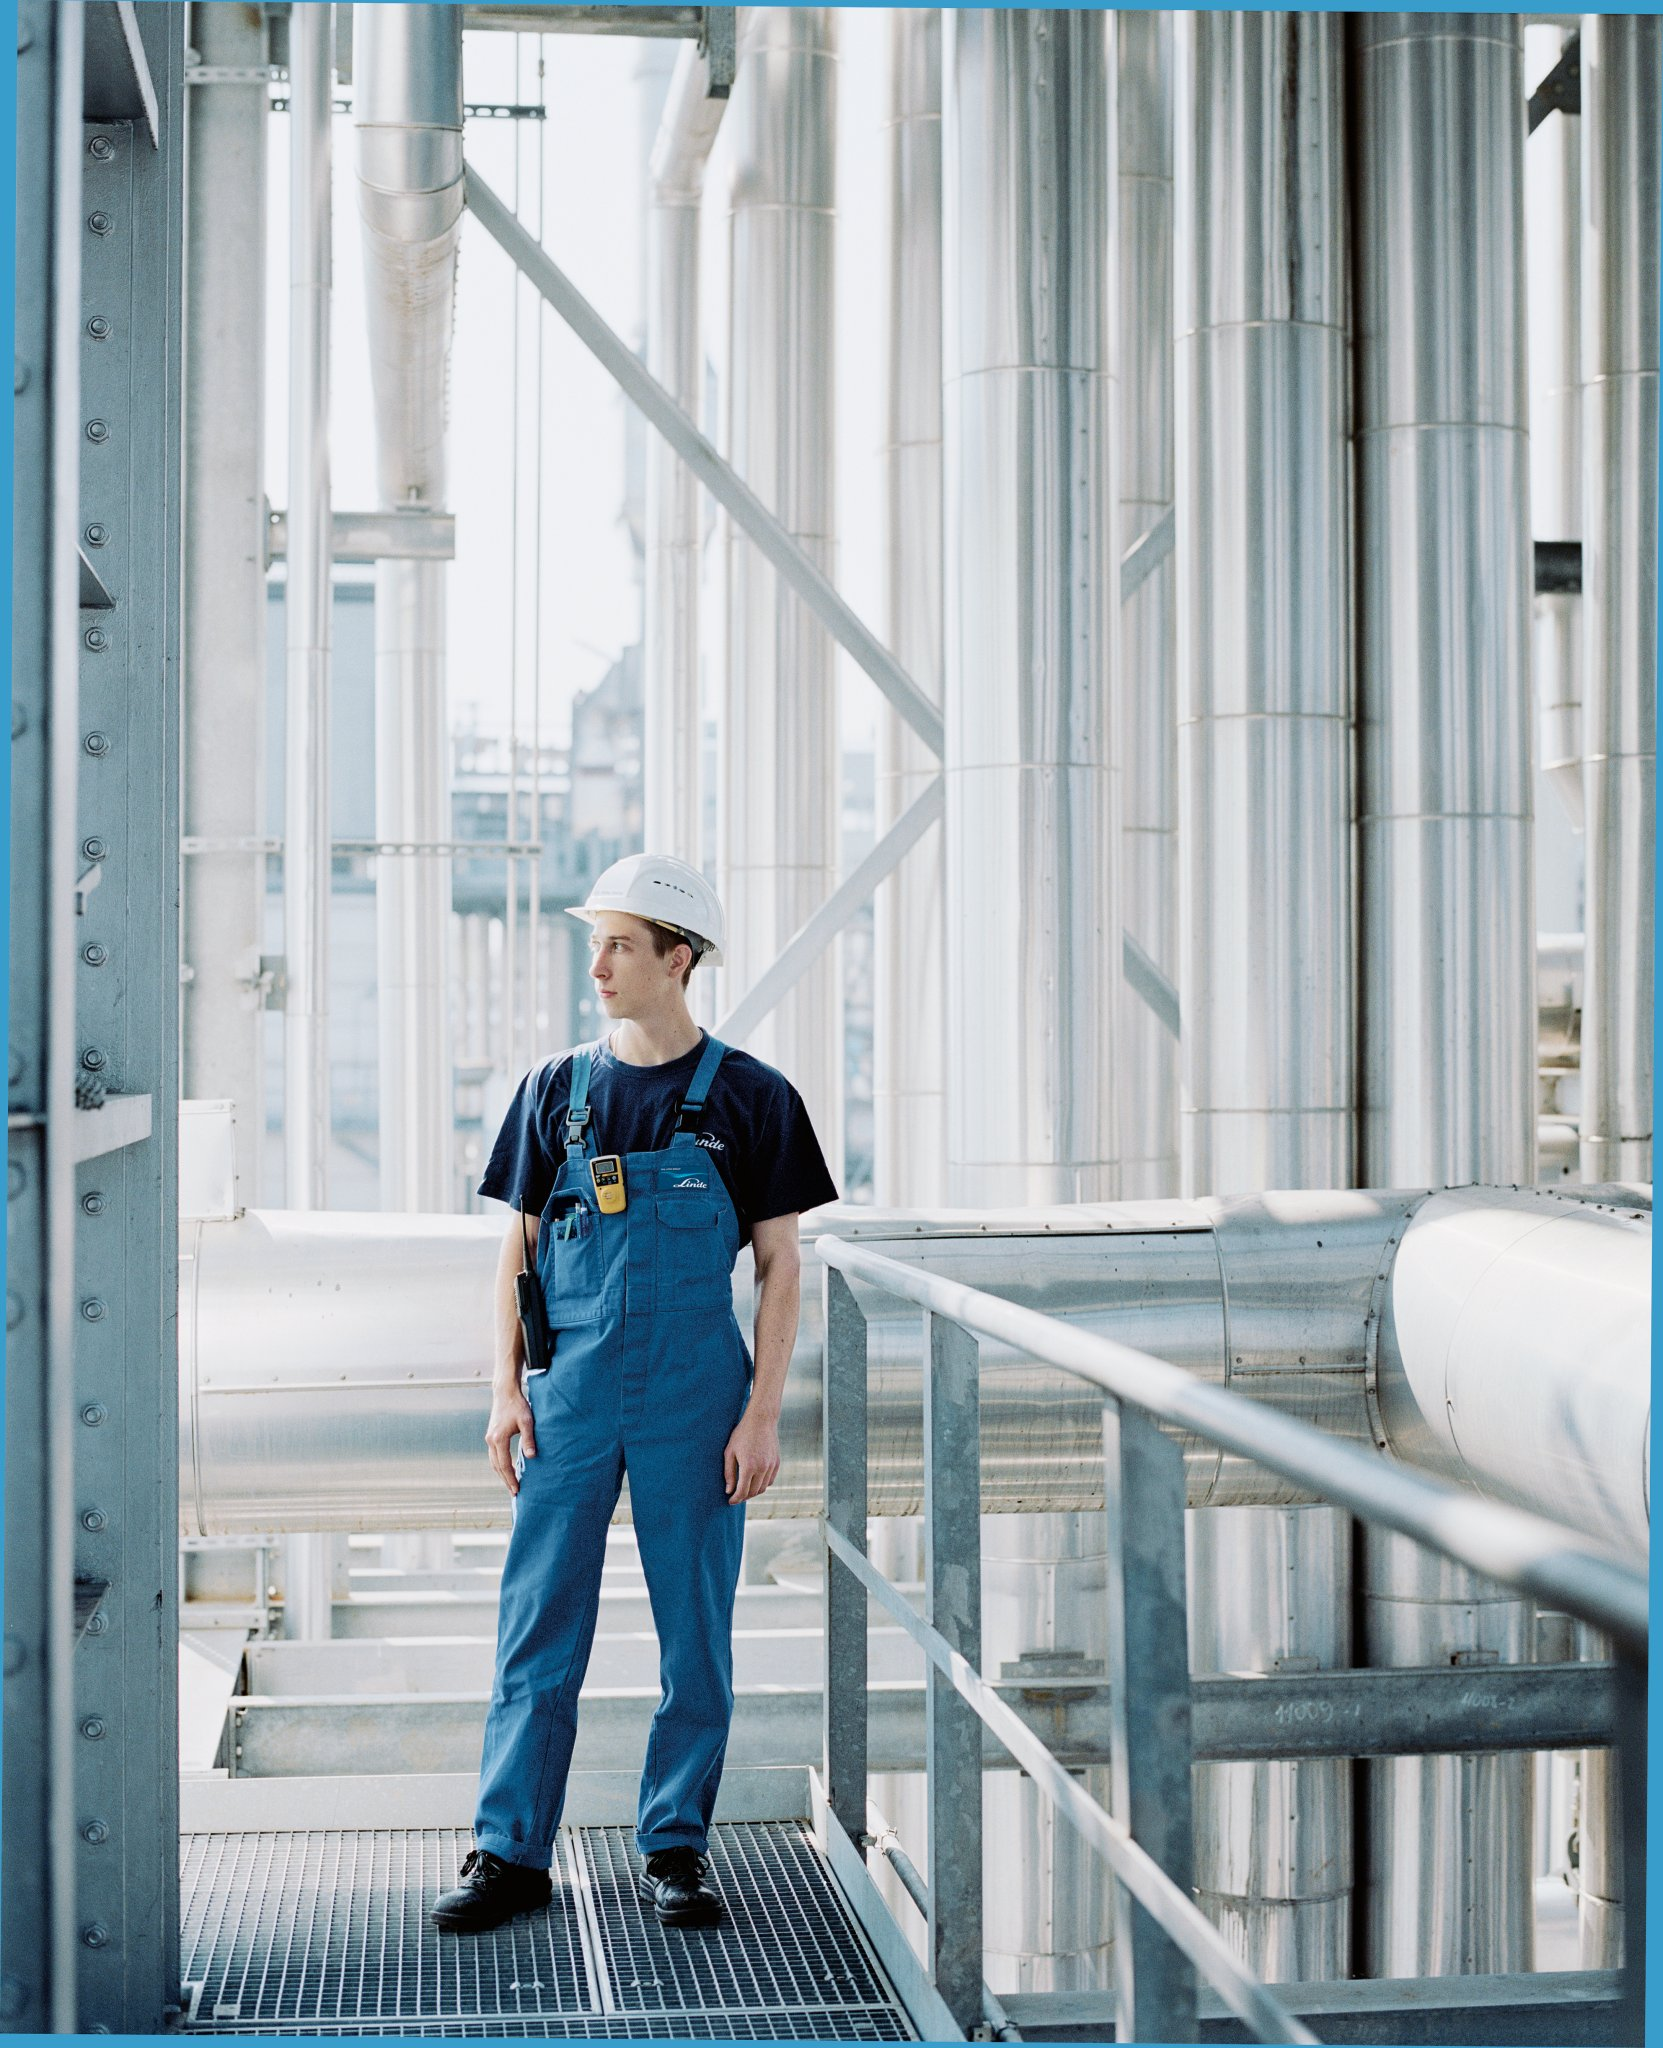 Worker at industry plant, Linde´s plant engineering expertise is in demand worldwide. (The Linde Annual 2007. Page 25).